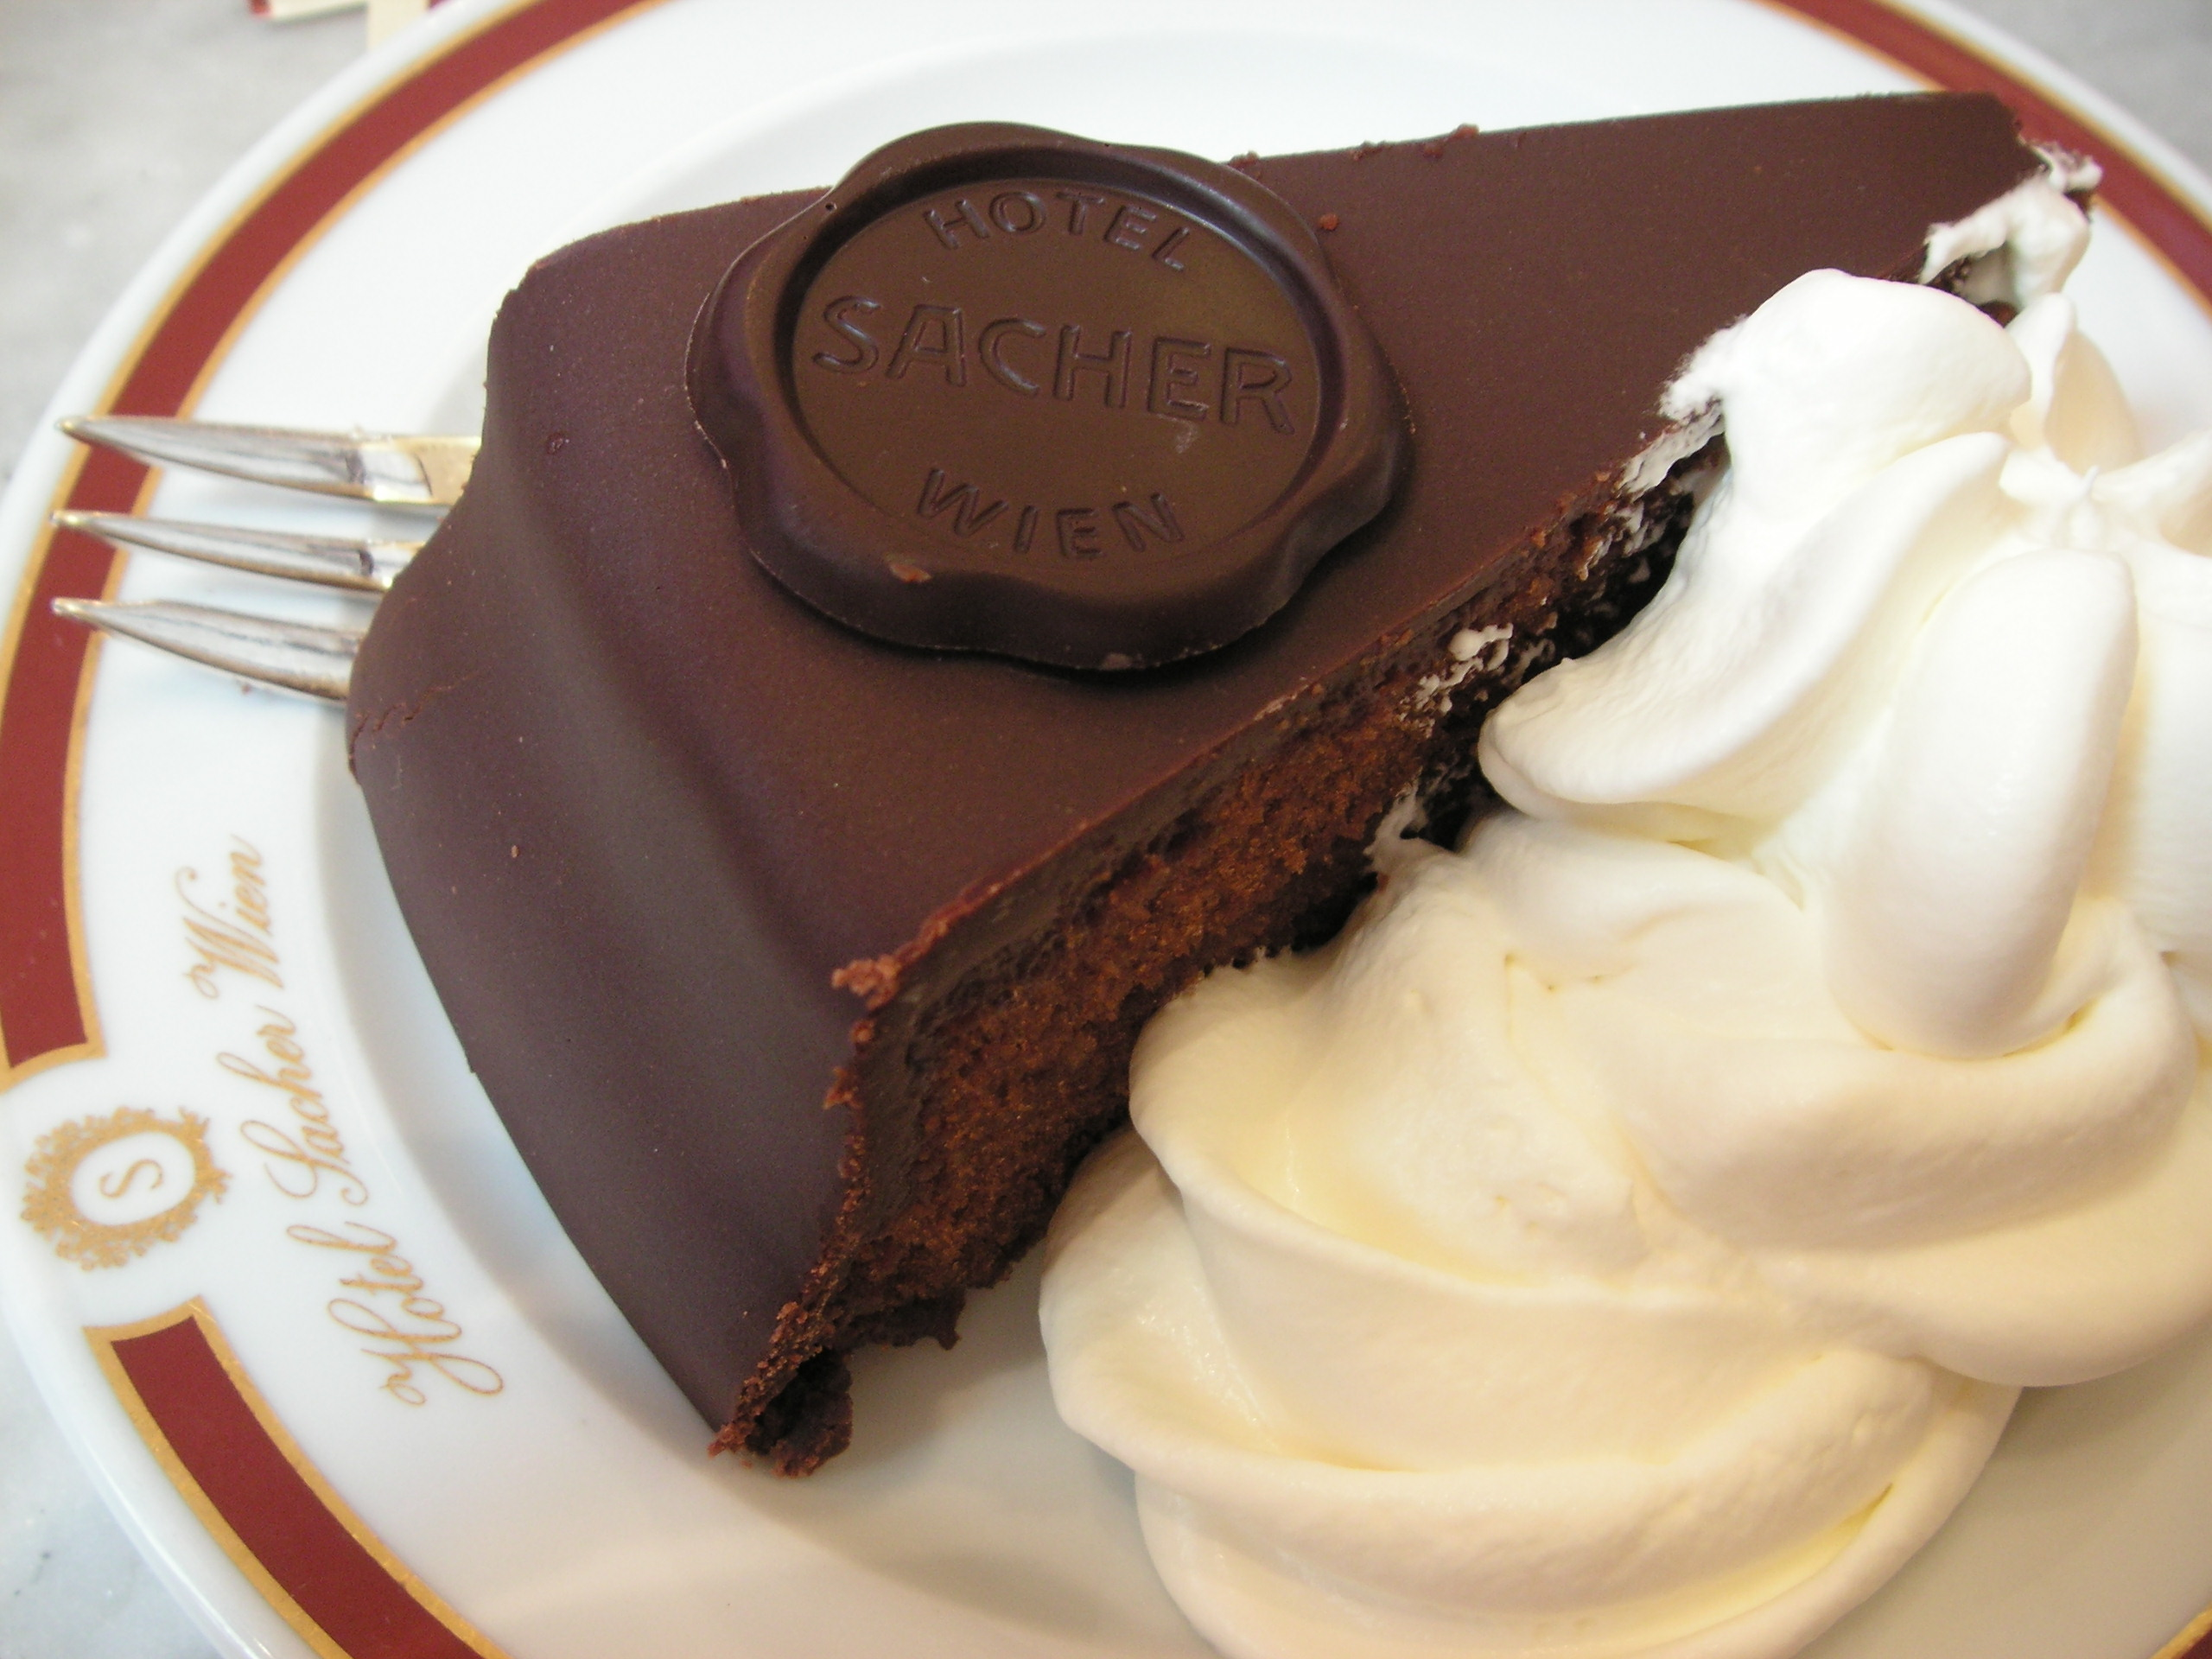 File:Original sacher torte.jpg